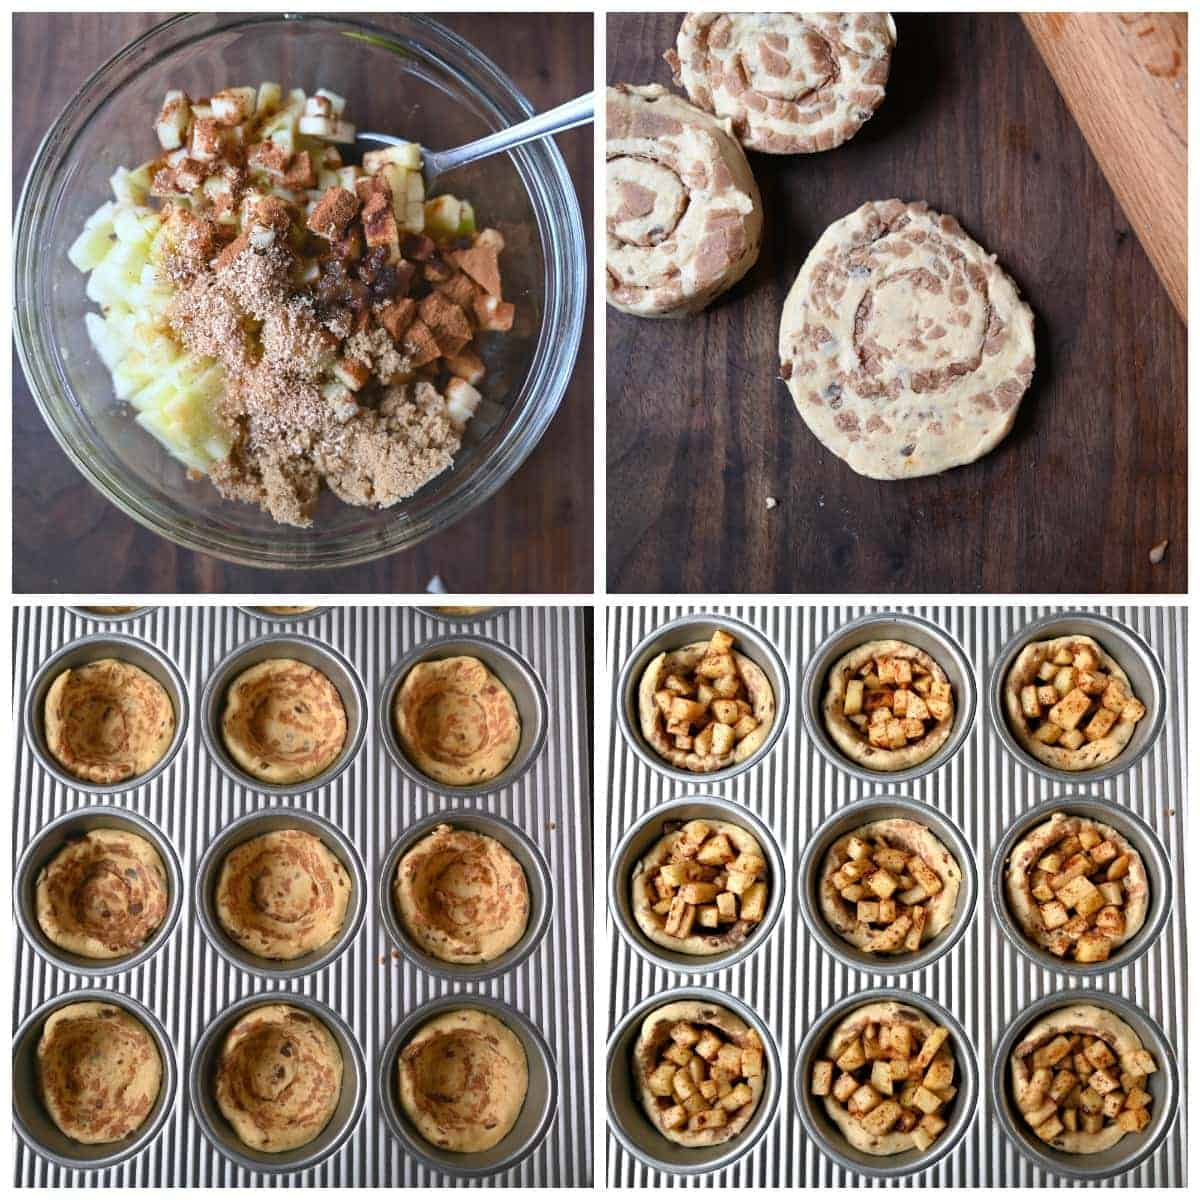 Four process photos. First one, apples and spices being mixed into a clear bowl. Second one, cinnamon rolls being rolled out to flatten. Third one, cinnamon rolls placed in muffin tins. Fourth one, Apples filled into the cinnamon rolls.